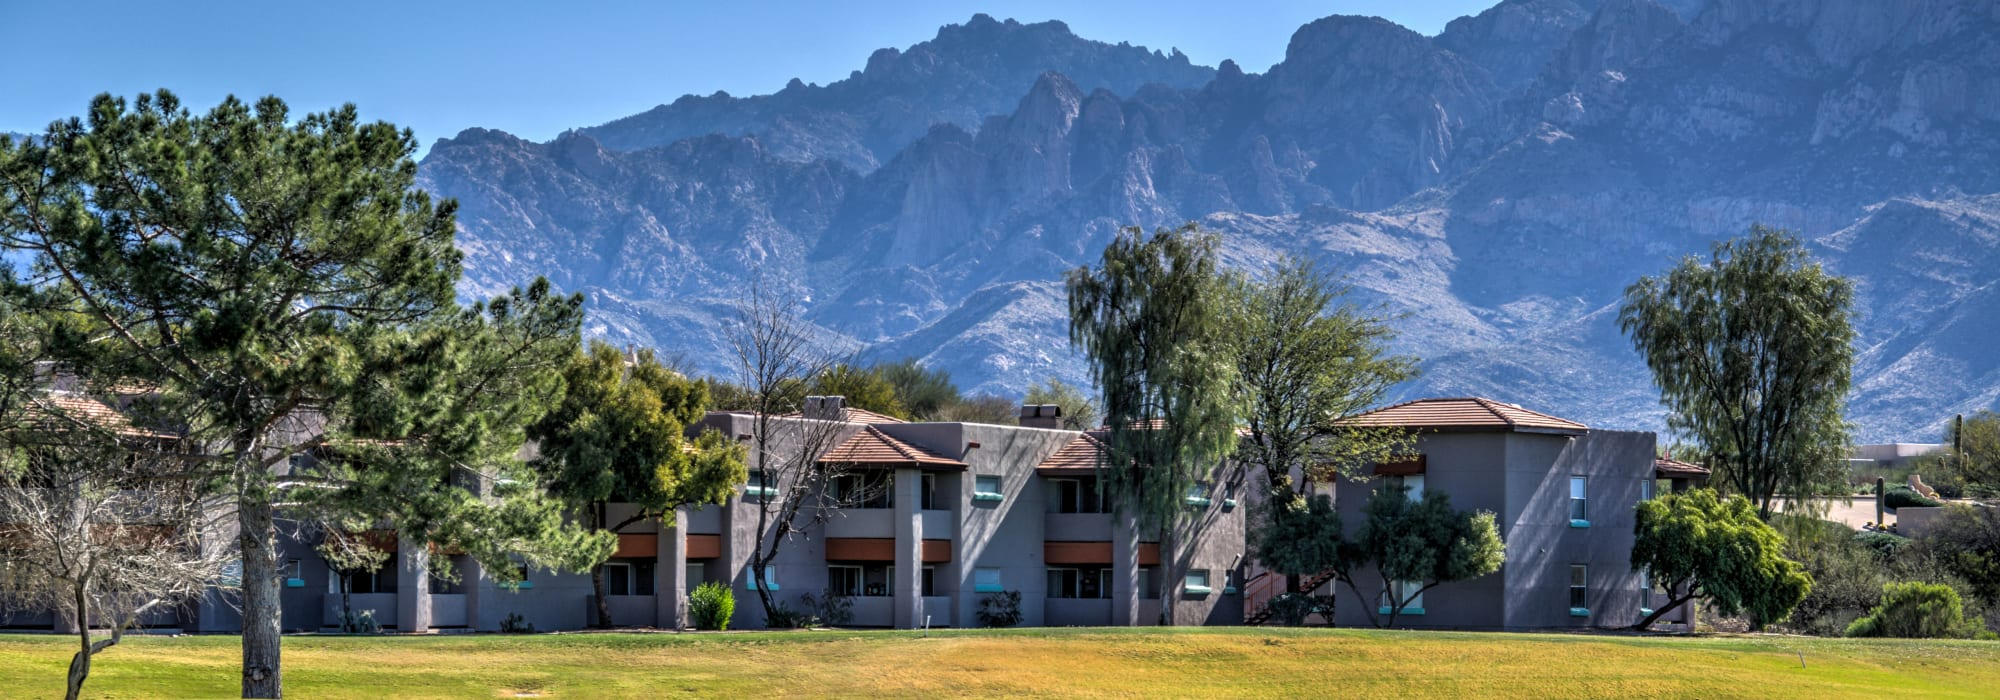 Apartments at The Golf Villas at Oro Valley in Tucson, Arizona